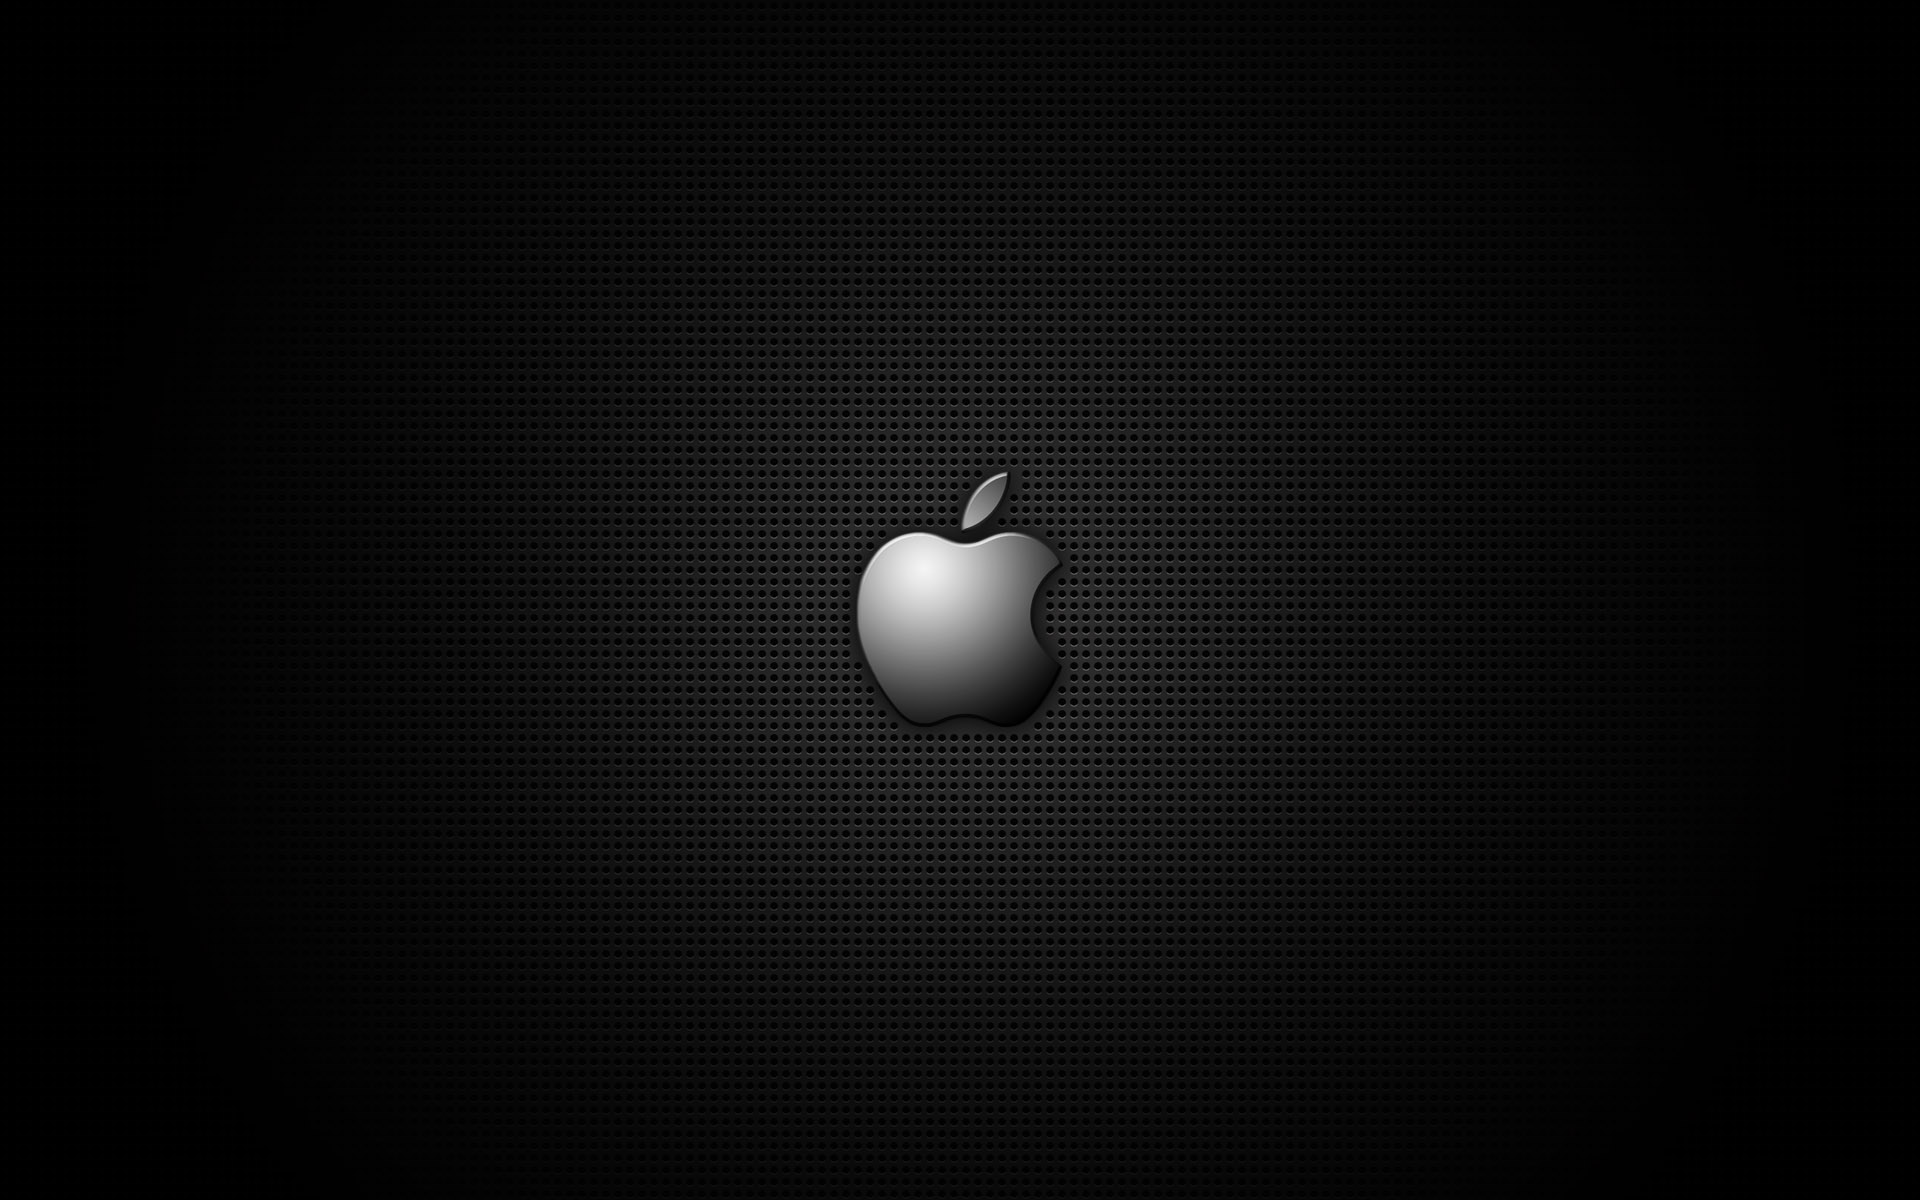 HD Apple wallpaper 18821